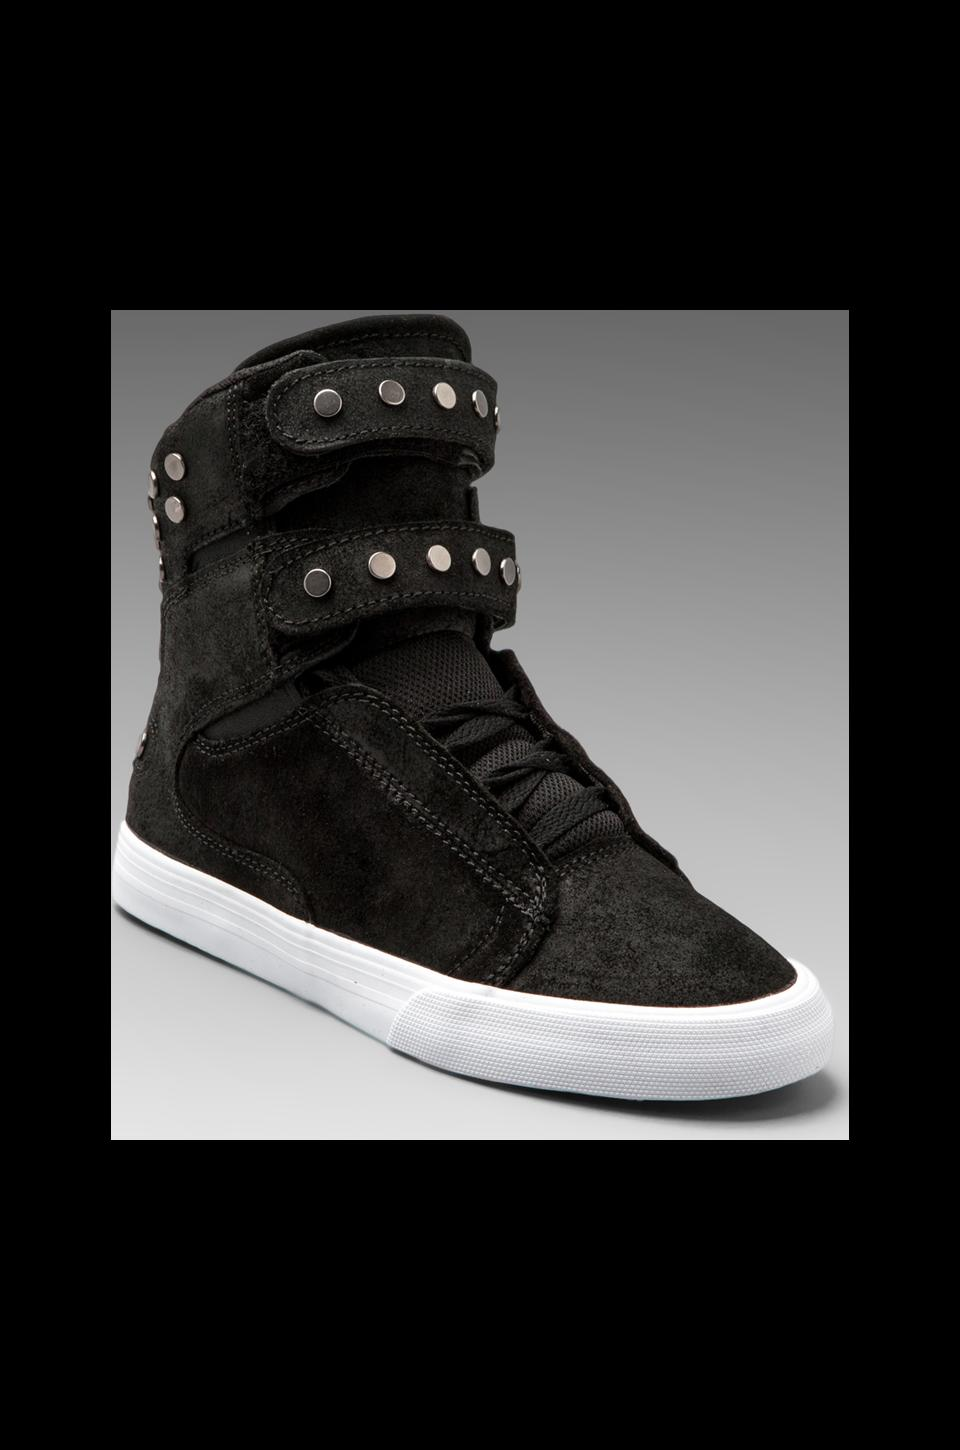 Supra Society Sneaker in Black